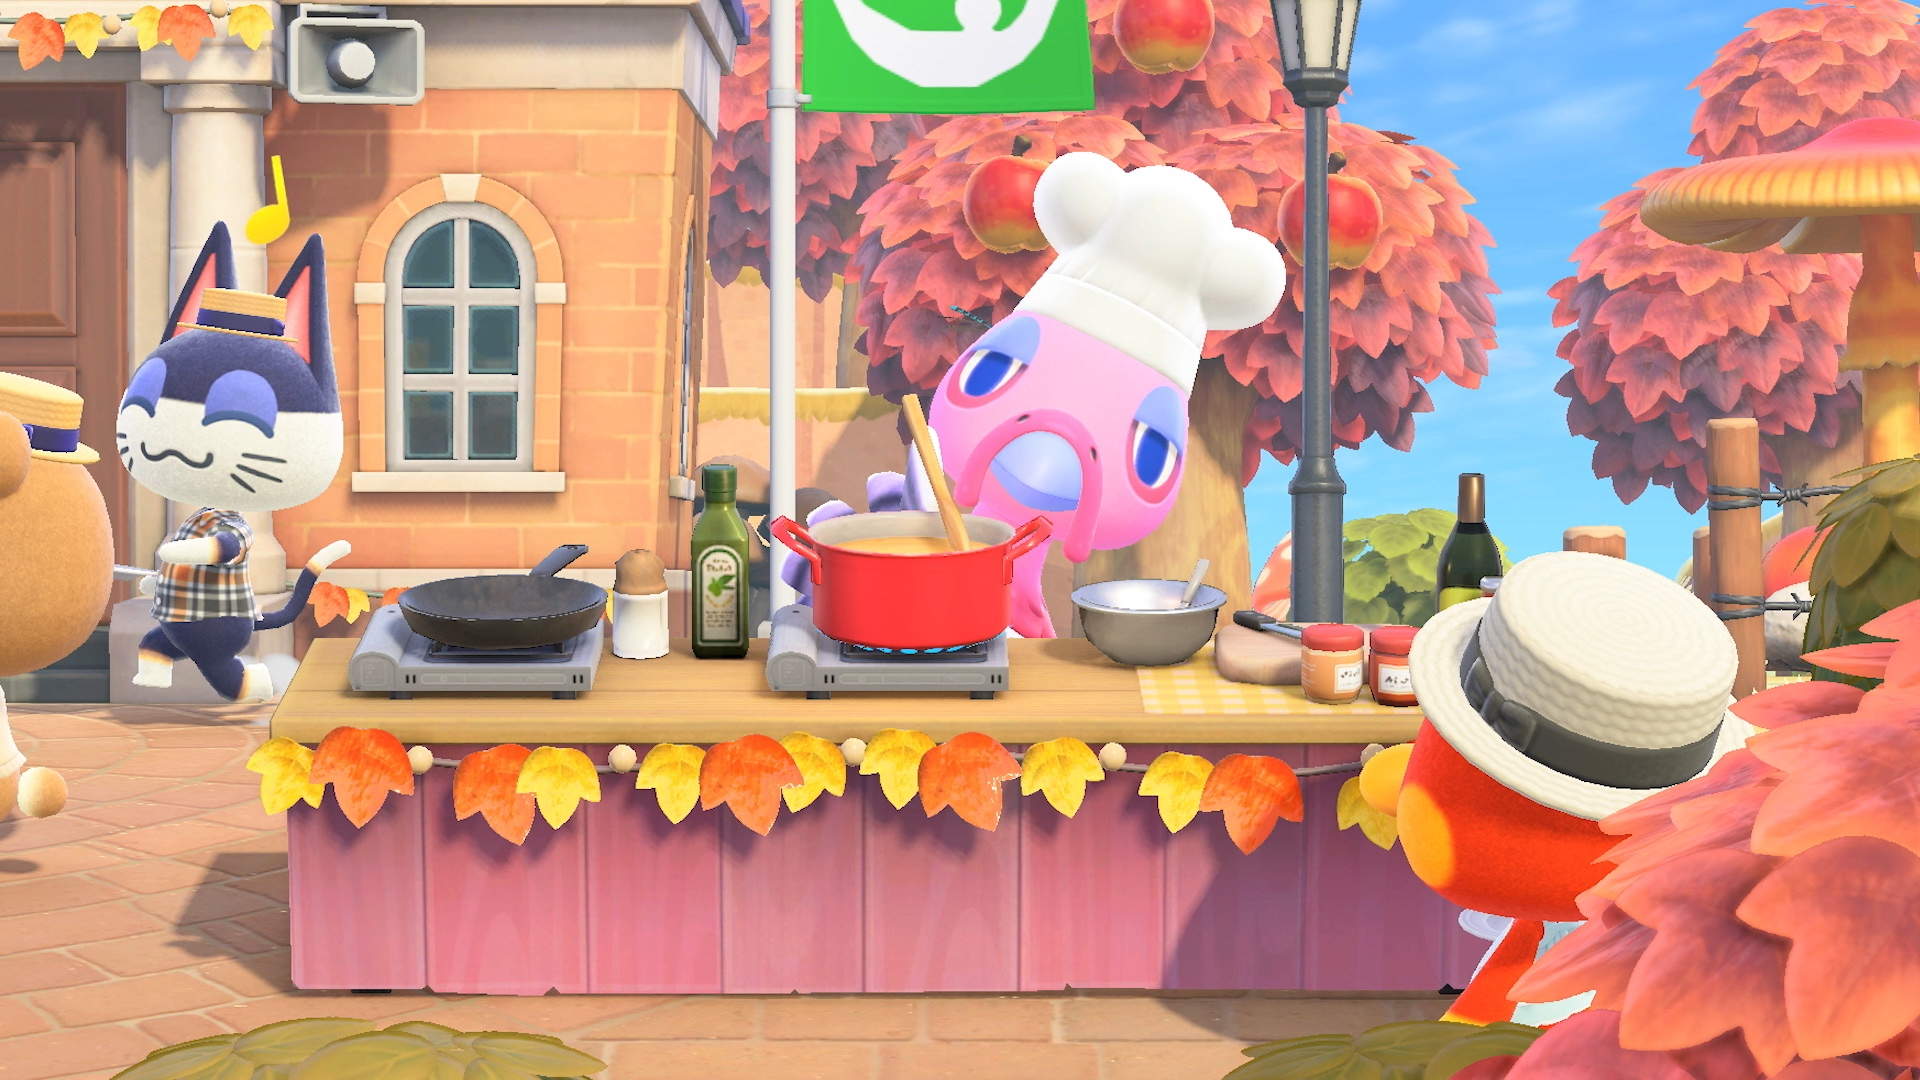 A turkey cooks a meal in a screenshot from Animal Crossing: New Horizons.